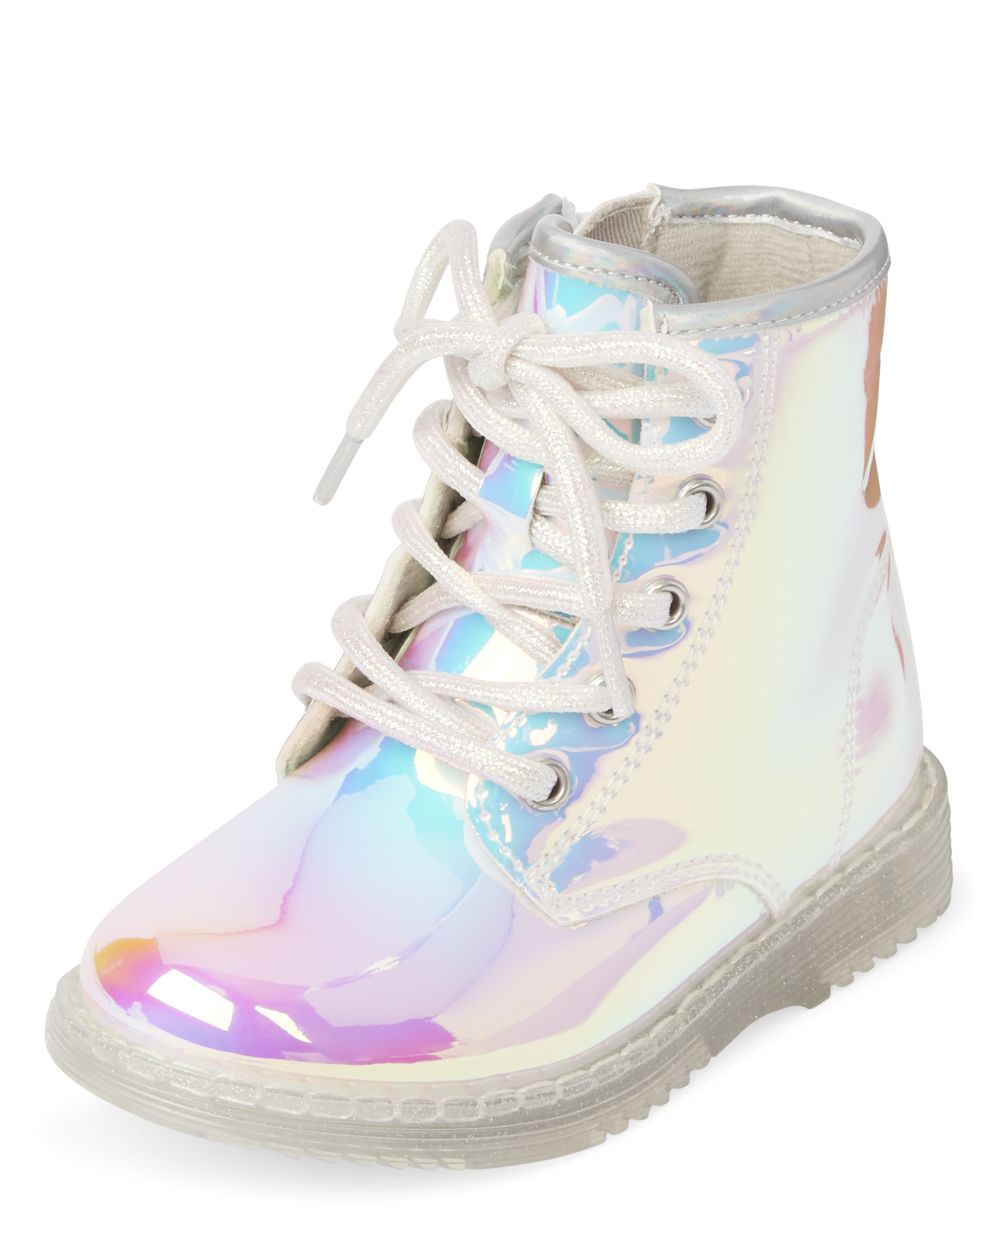 Toddler Girls Holographic Lace Up Booties